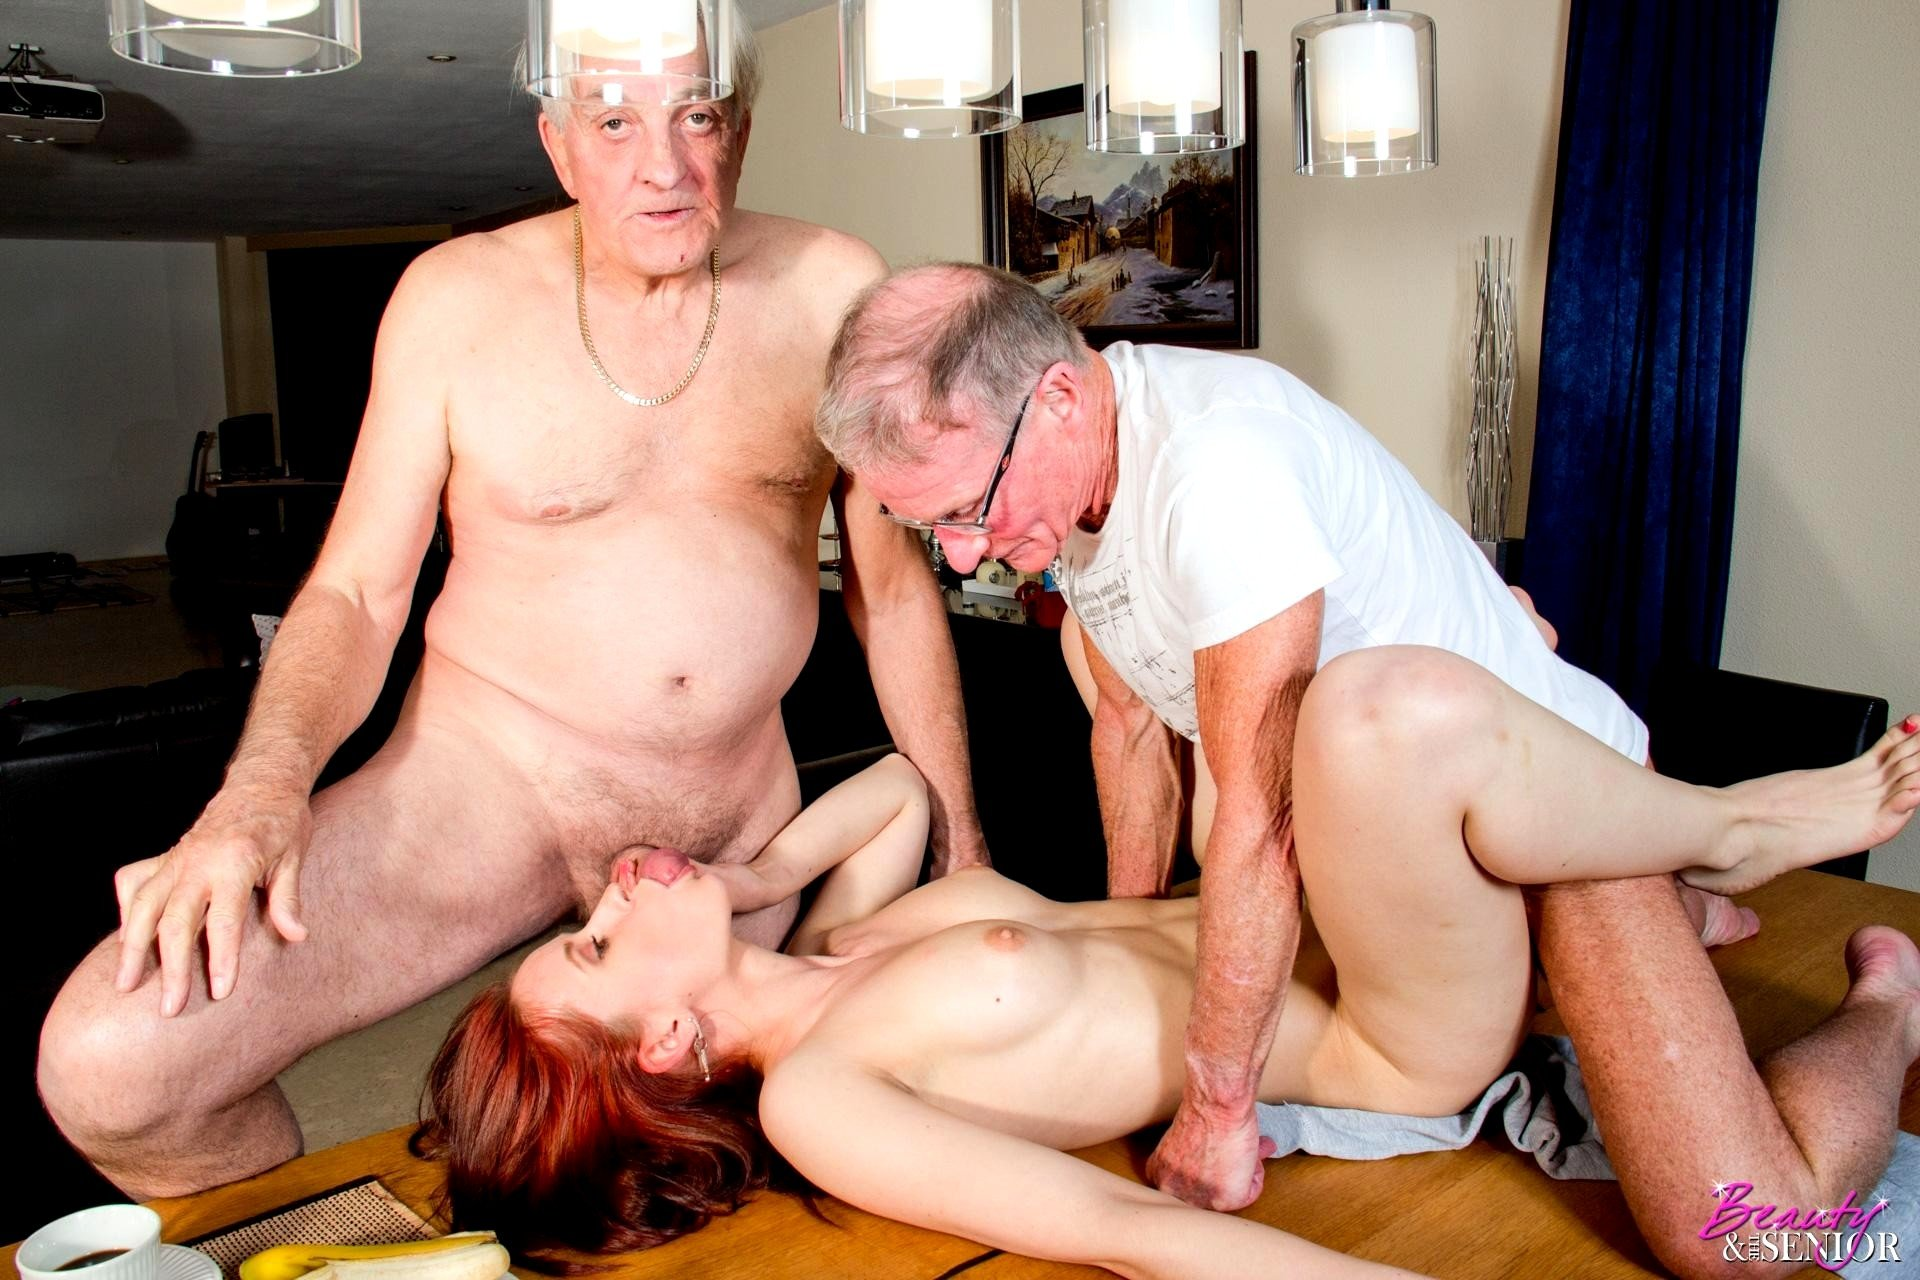 Old man fuck nude women, the youngest naked girls